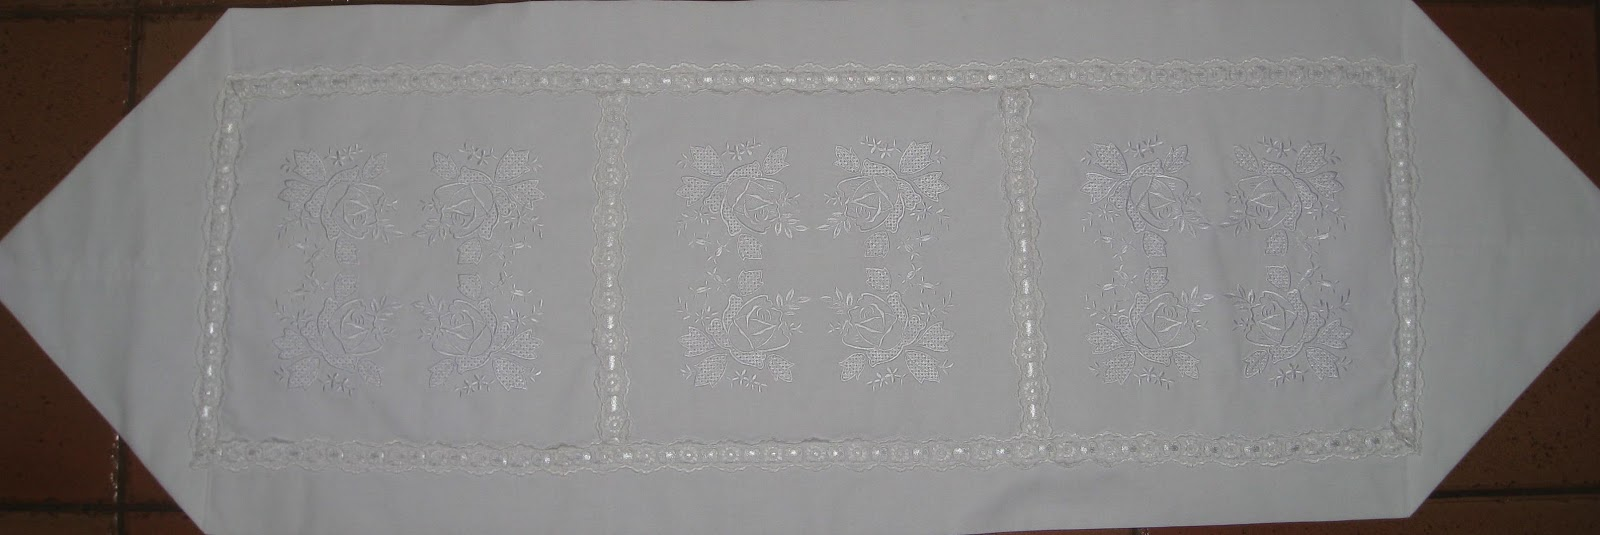 Vicki 39 s fabric creations free pattern project downloads for 10 minute table runner pattern